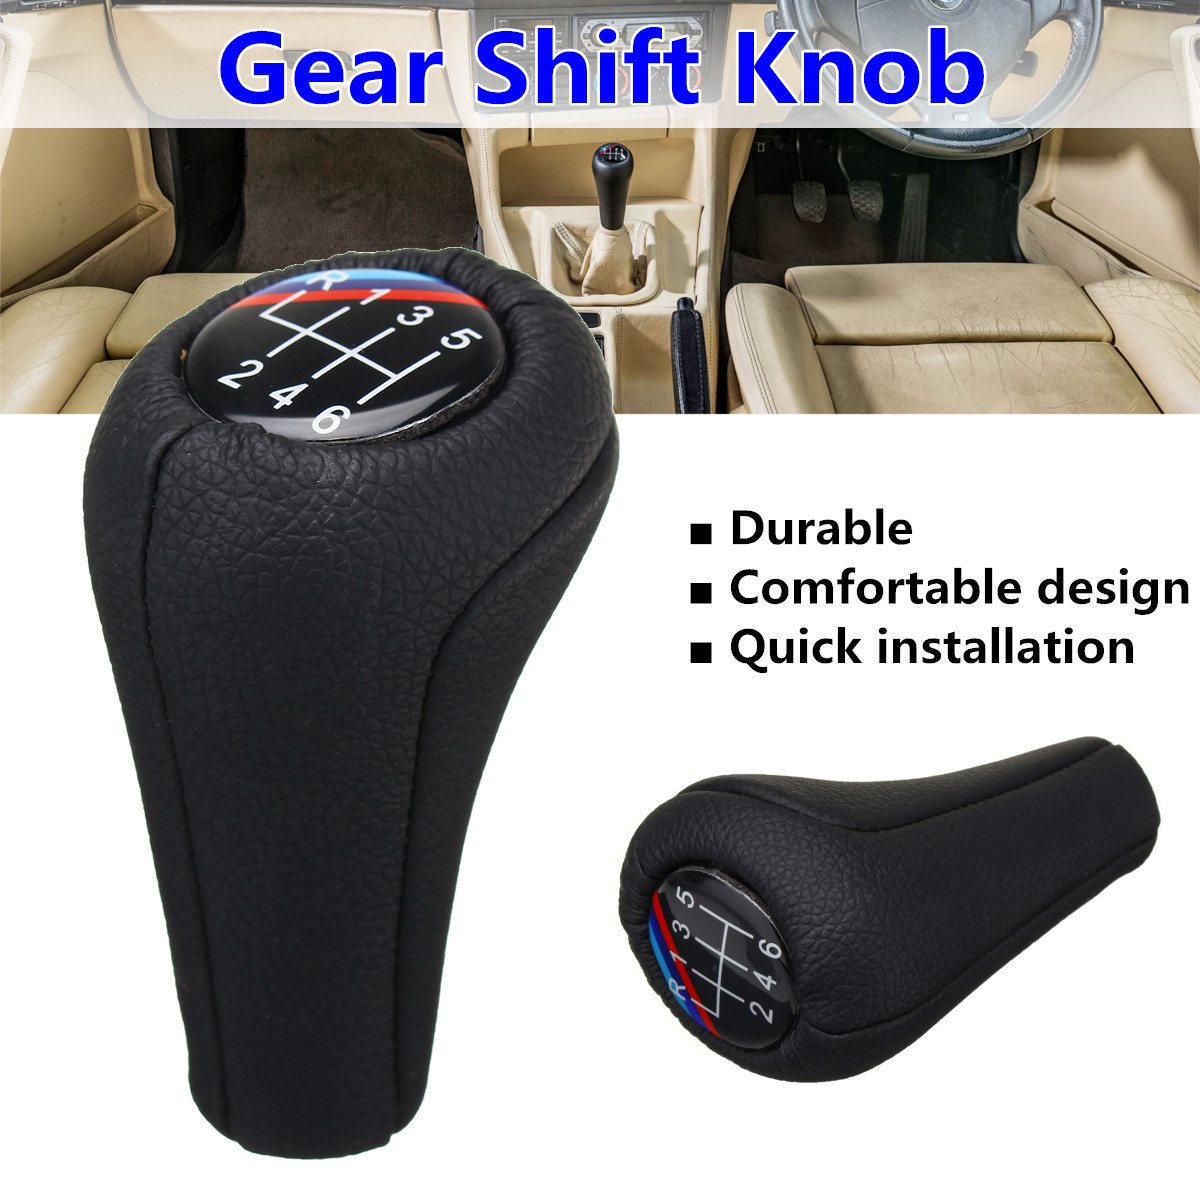 Leather 5 Speed 6 Speed Manual Car Gear Shift Knob For BMW E92 E91 E90 E60 E46 E39 E36 M3 M5 M6